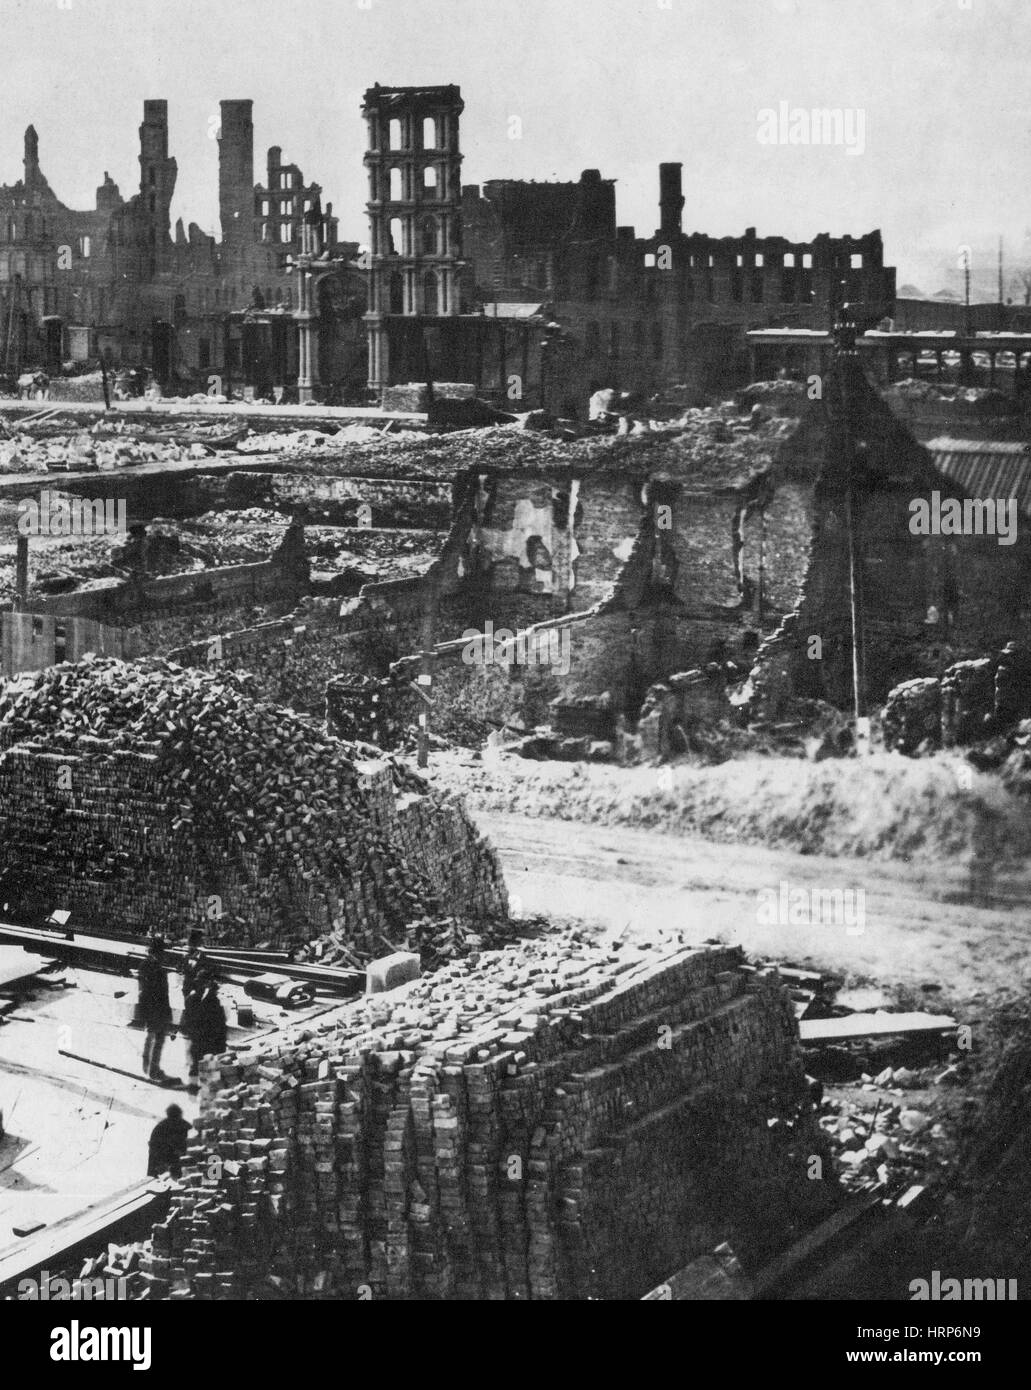 The Great Chicago Fire Aftermath, 1871 - Stock Image